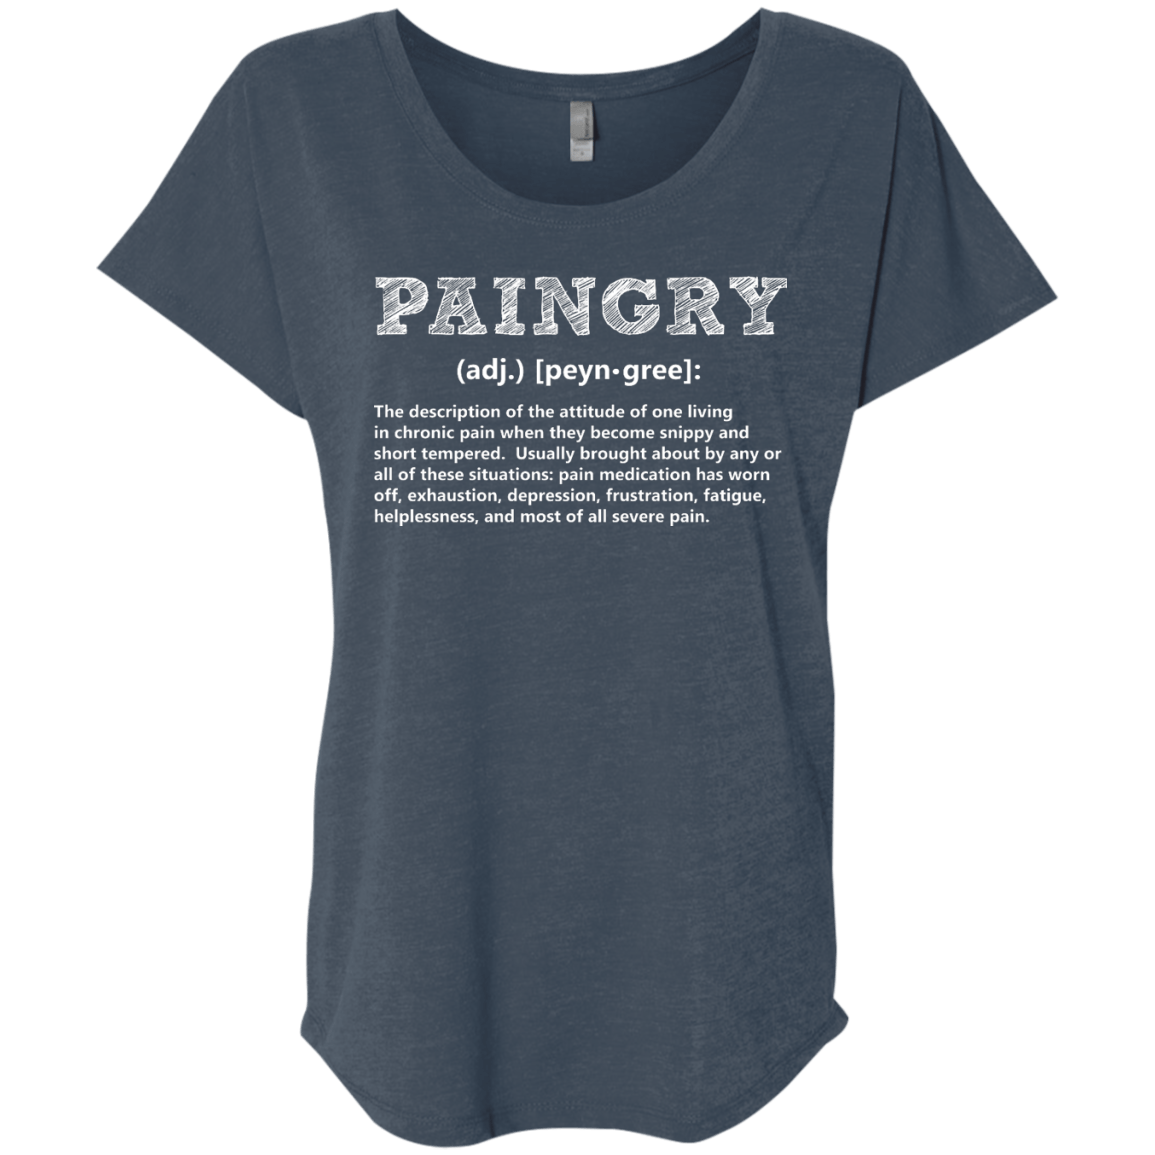 T-Shirts - Paingry Definition Dolman Sleeve